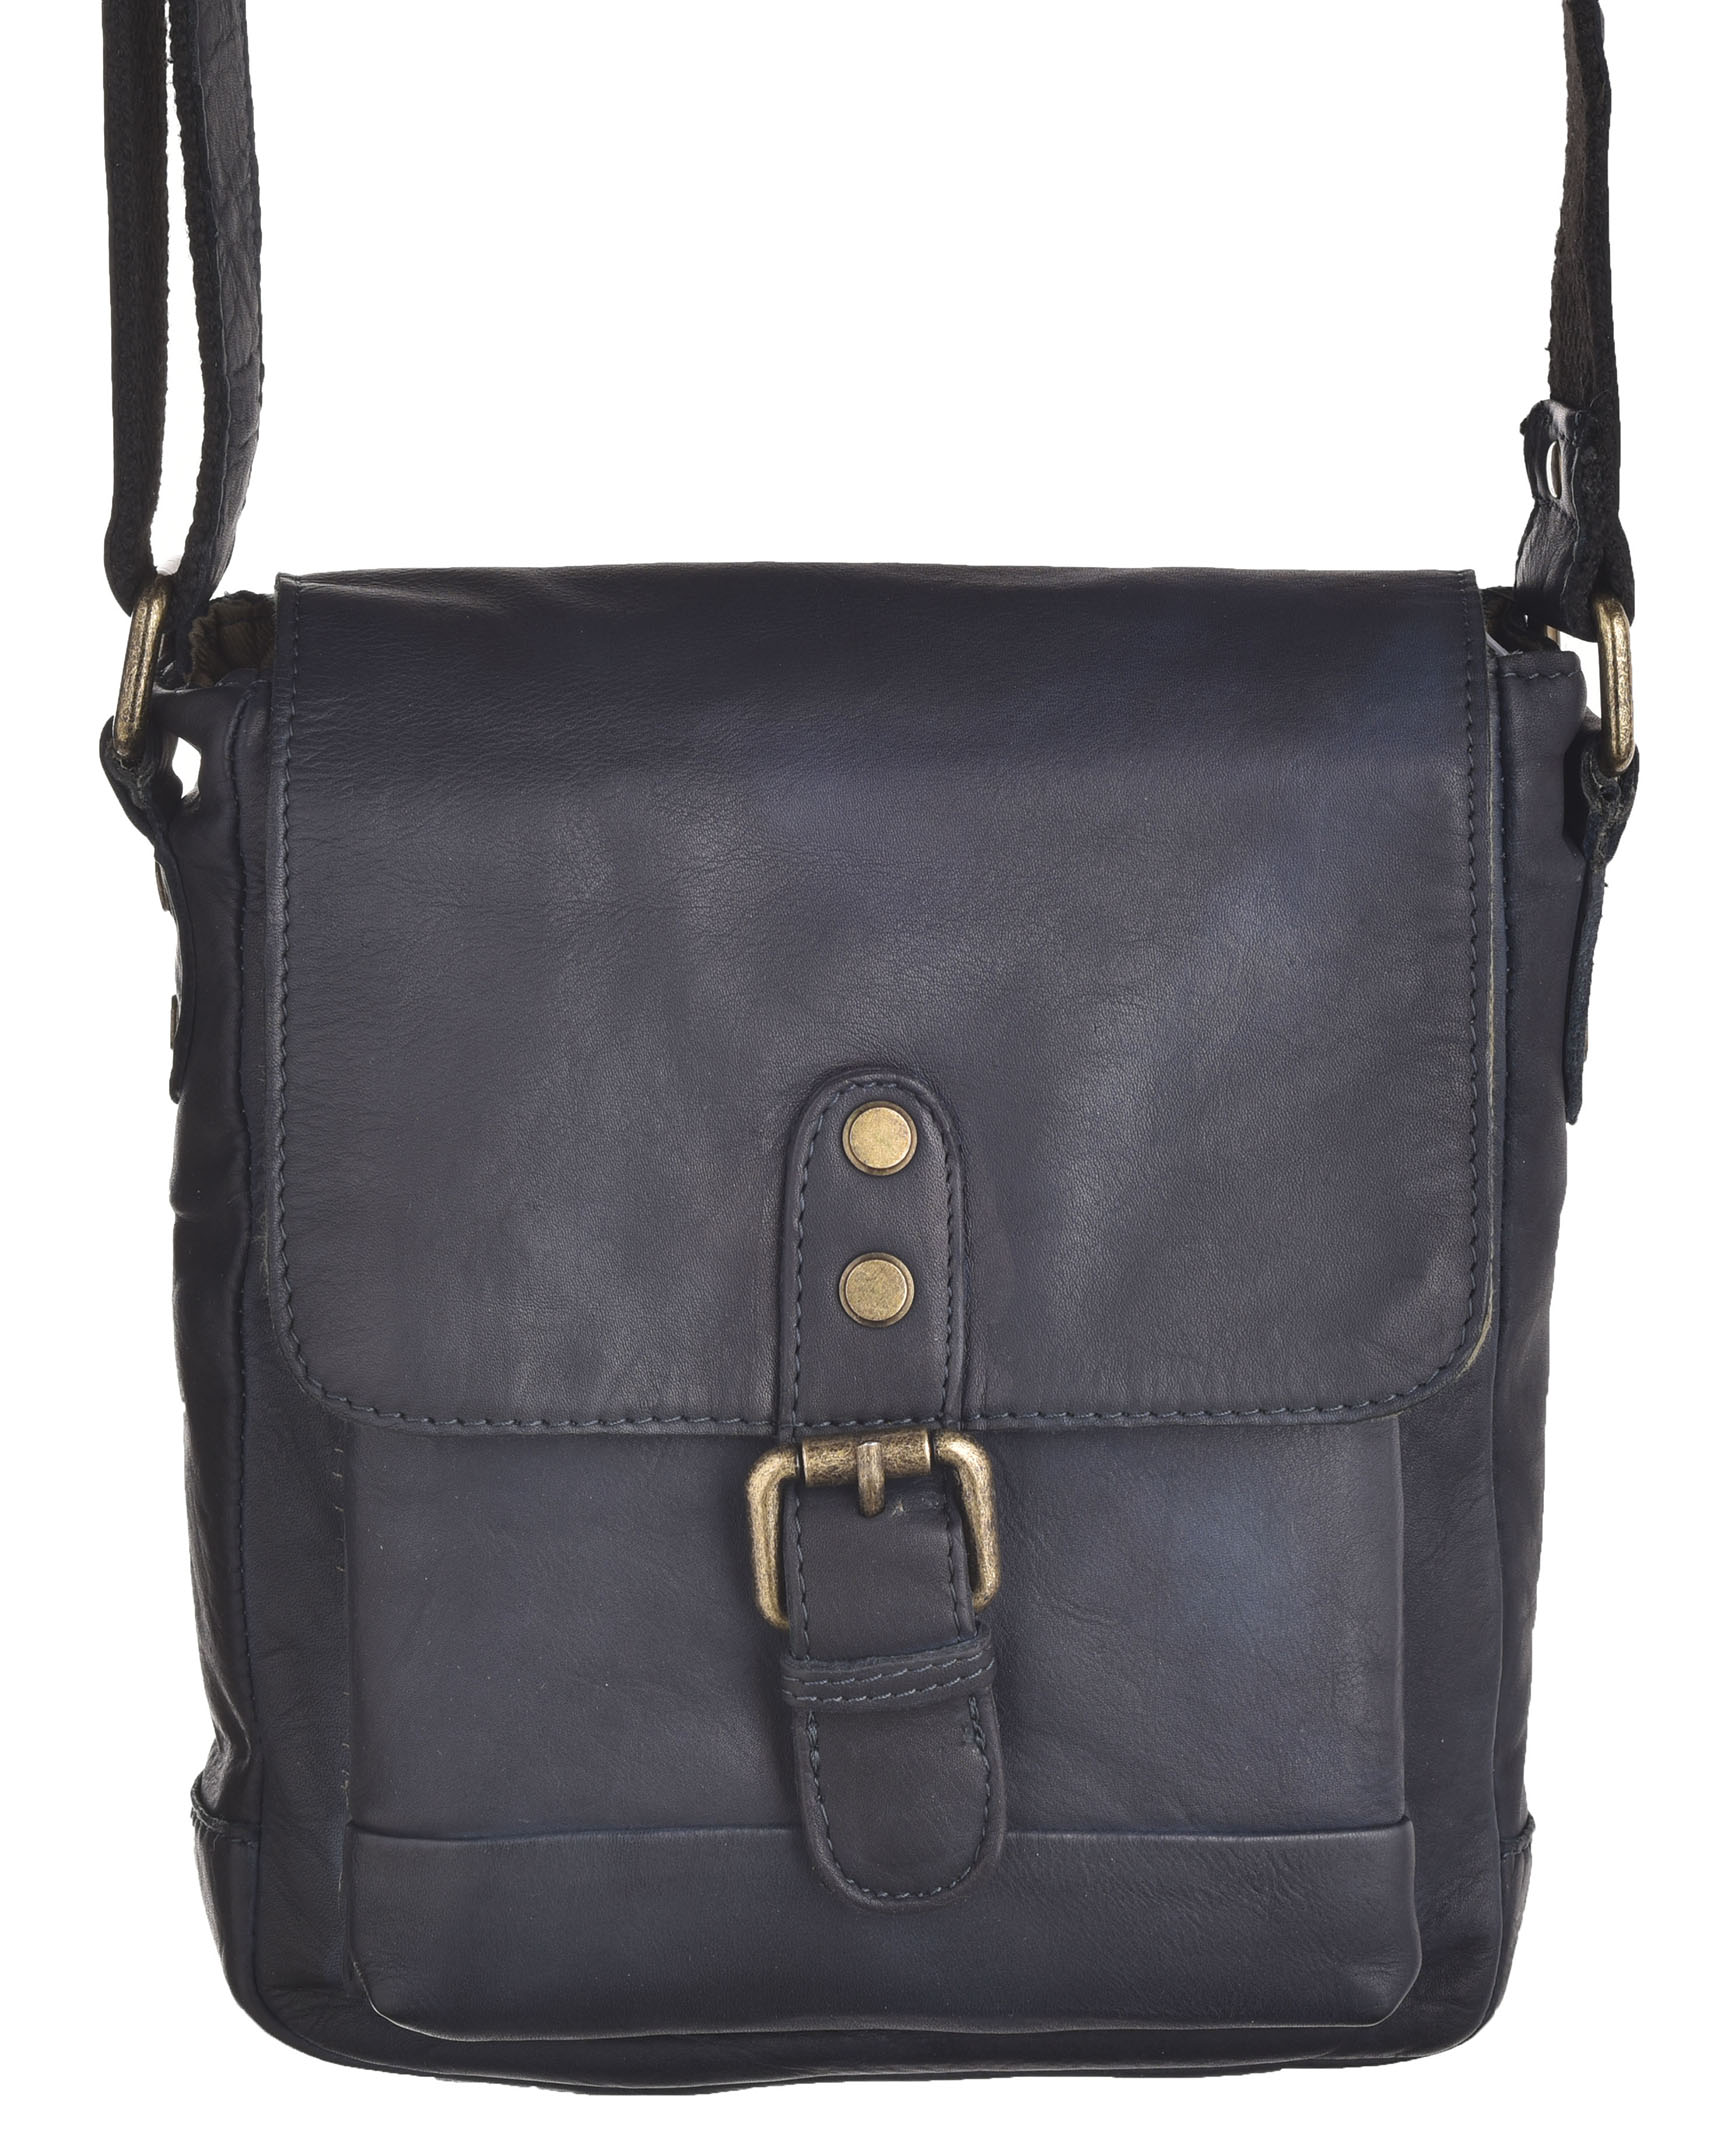 Mens Ladies High Quality Small Unisex Flap Over Shoulder Cross Body ... 4a0dd3e4b593a